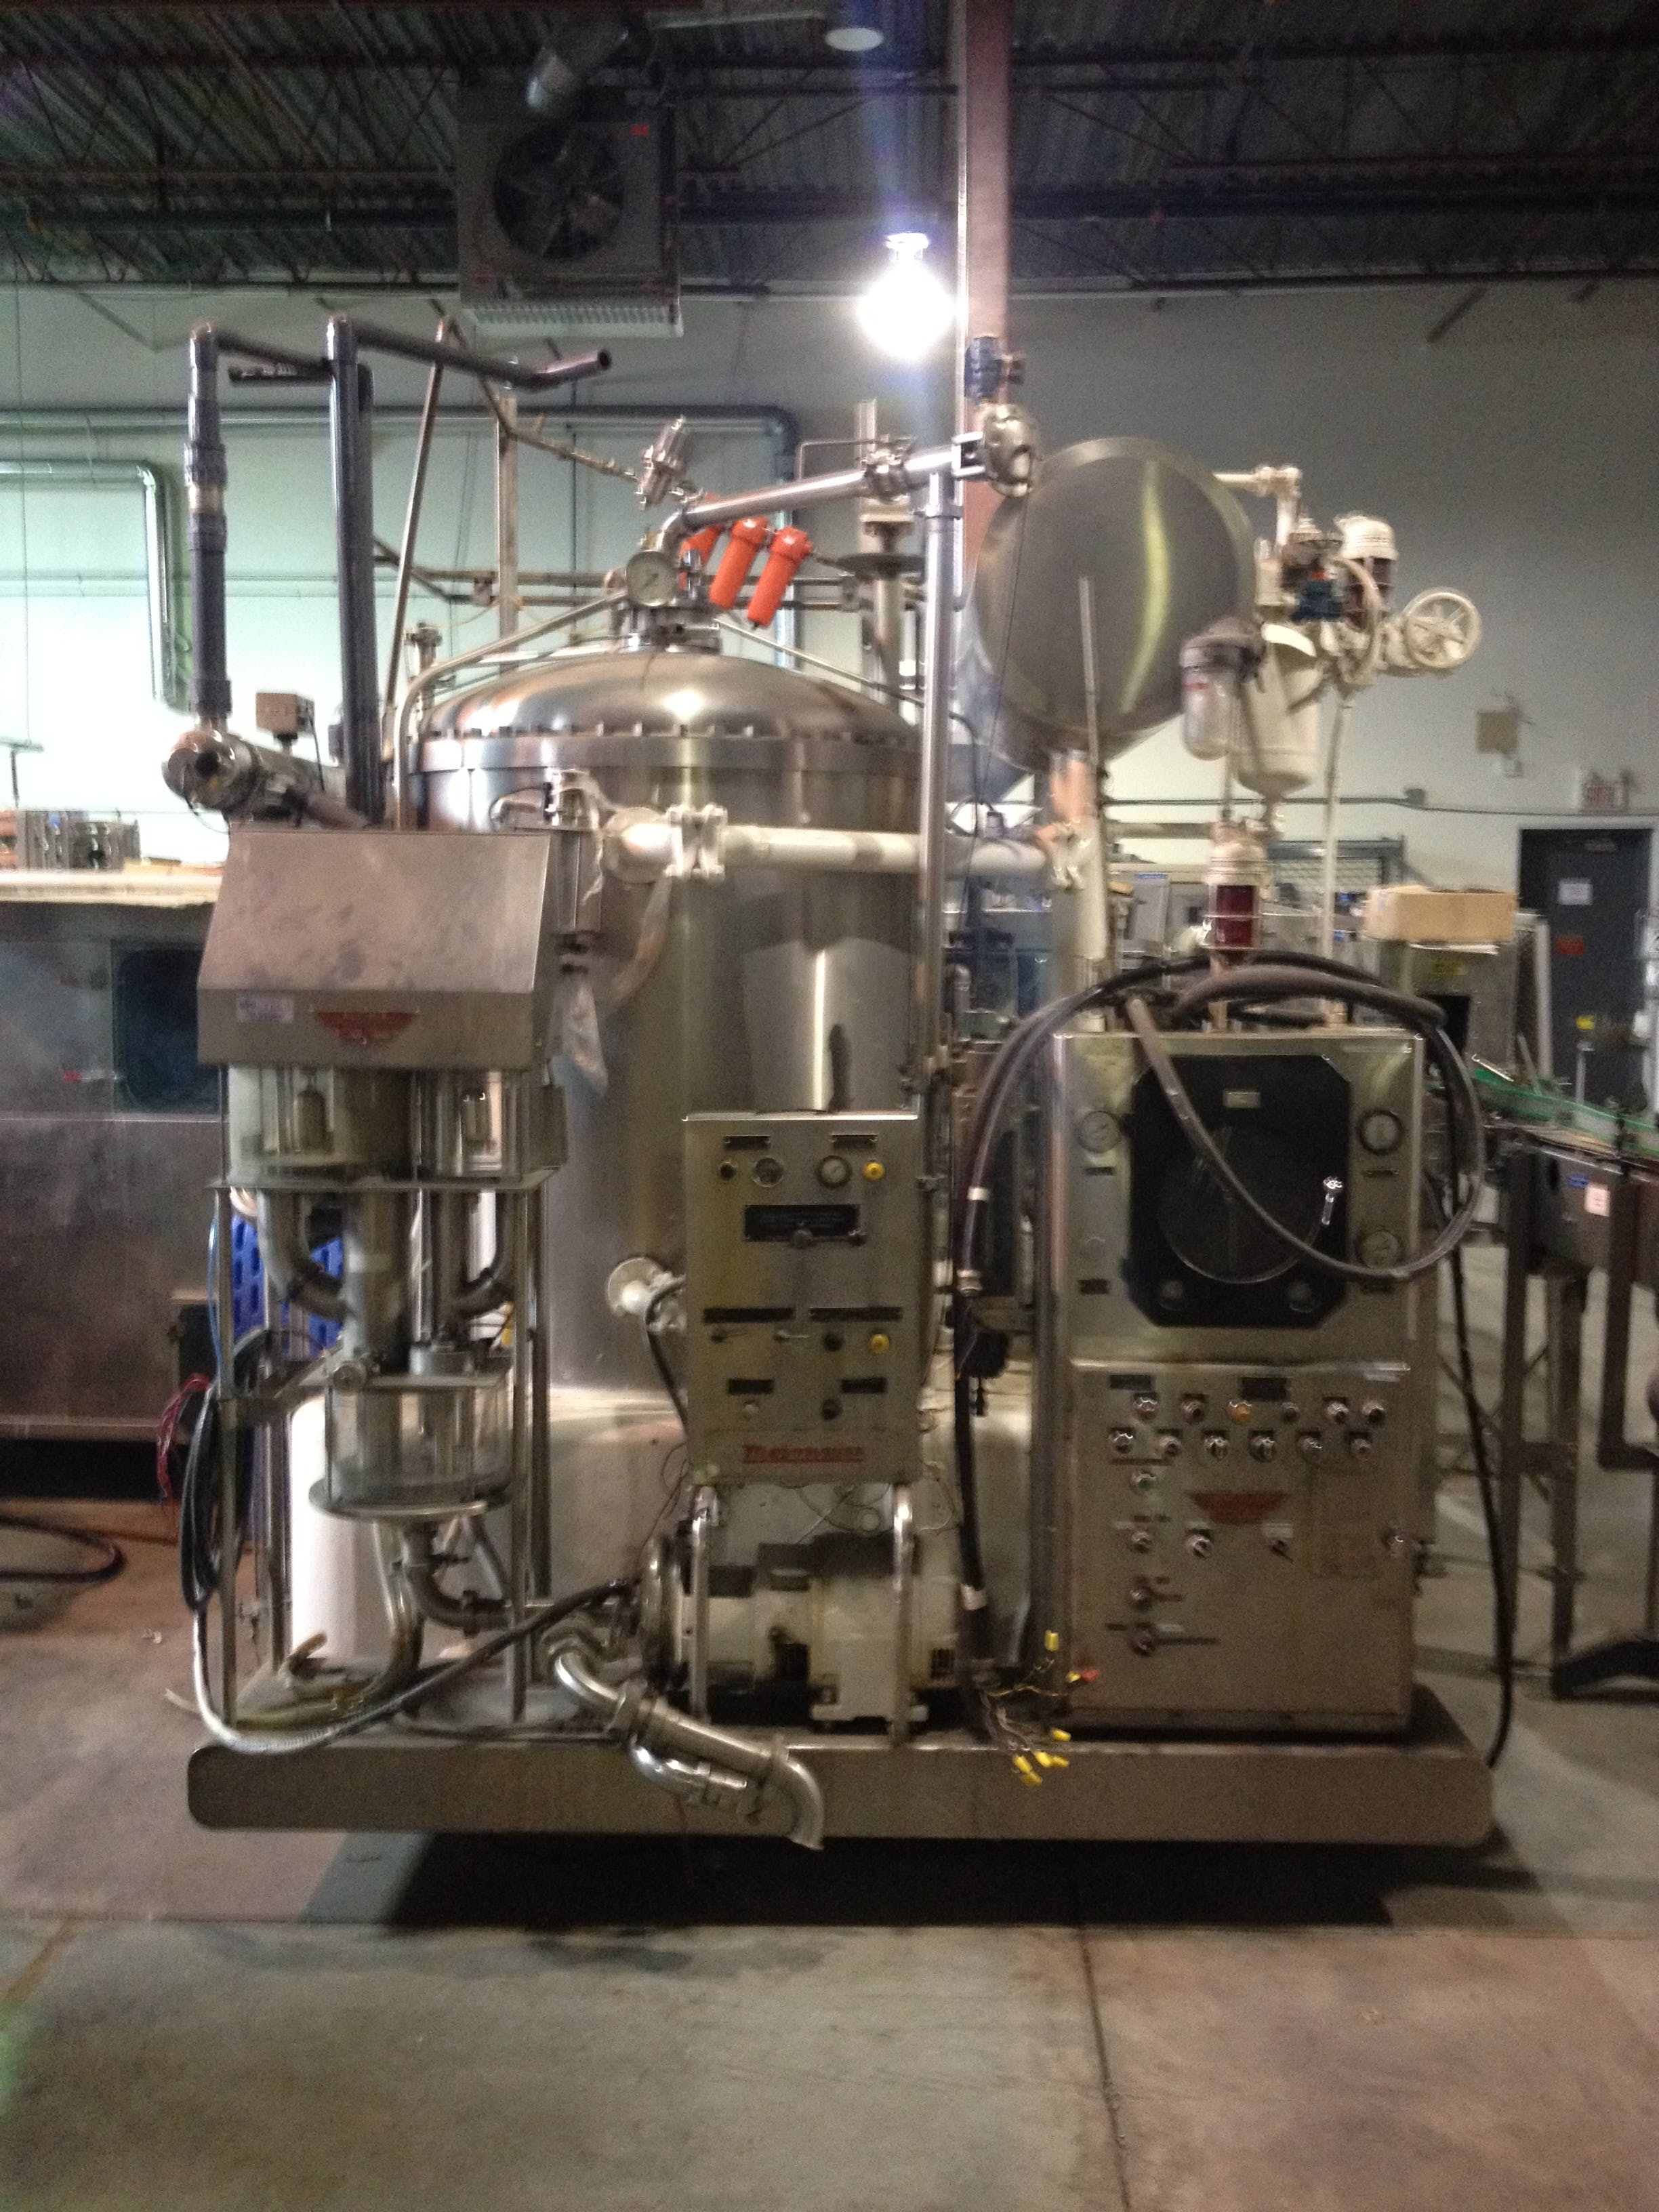 MOJONNIER Carbocooler + Flow mix + UV water Purificator Carbonation unit sold by Aevos Equipment